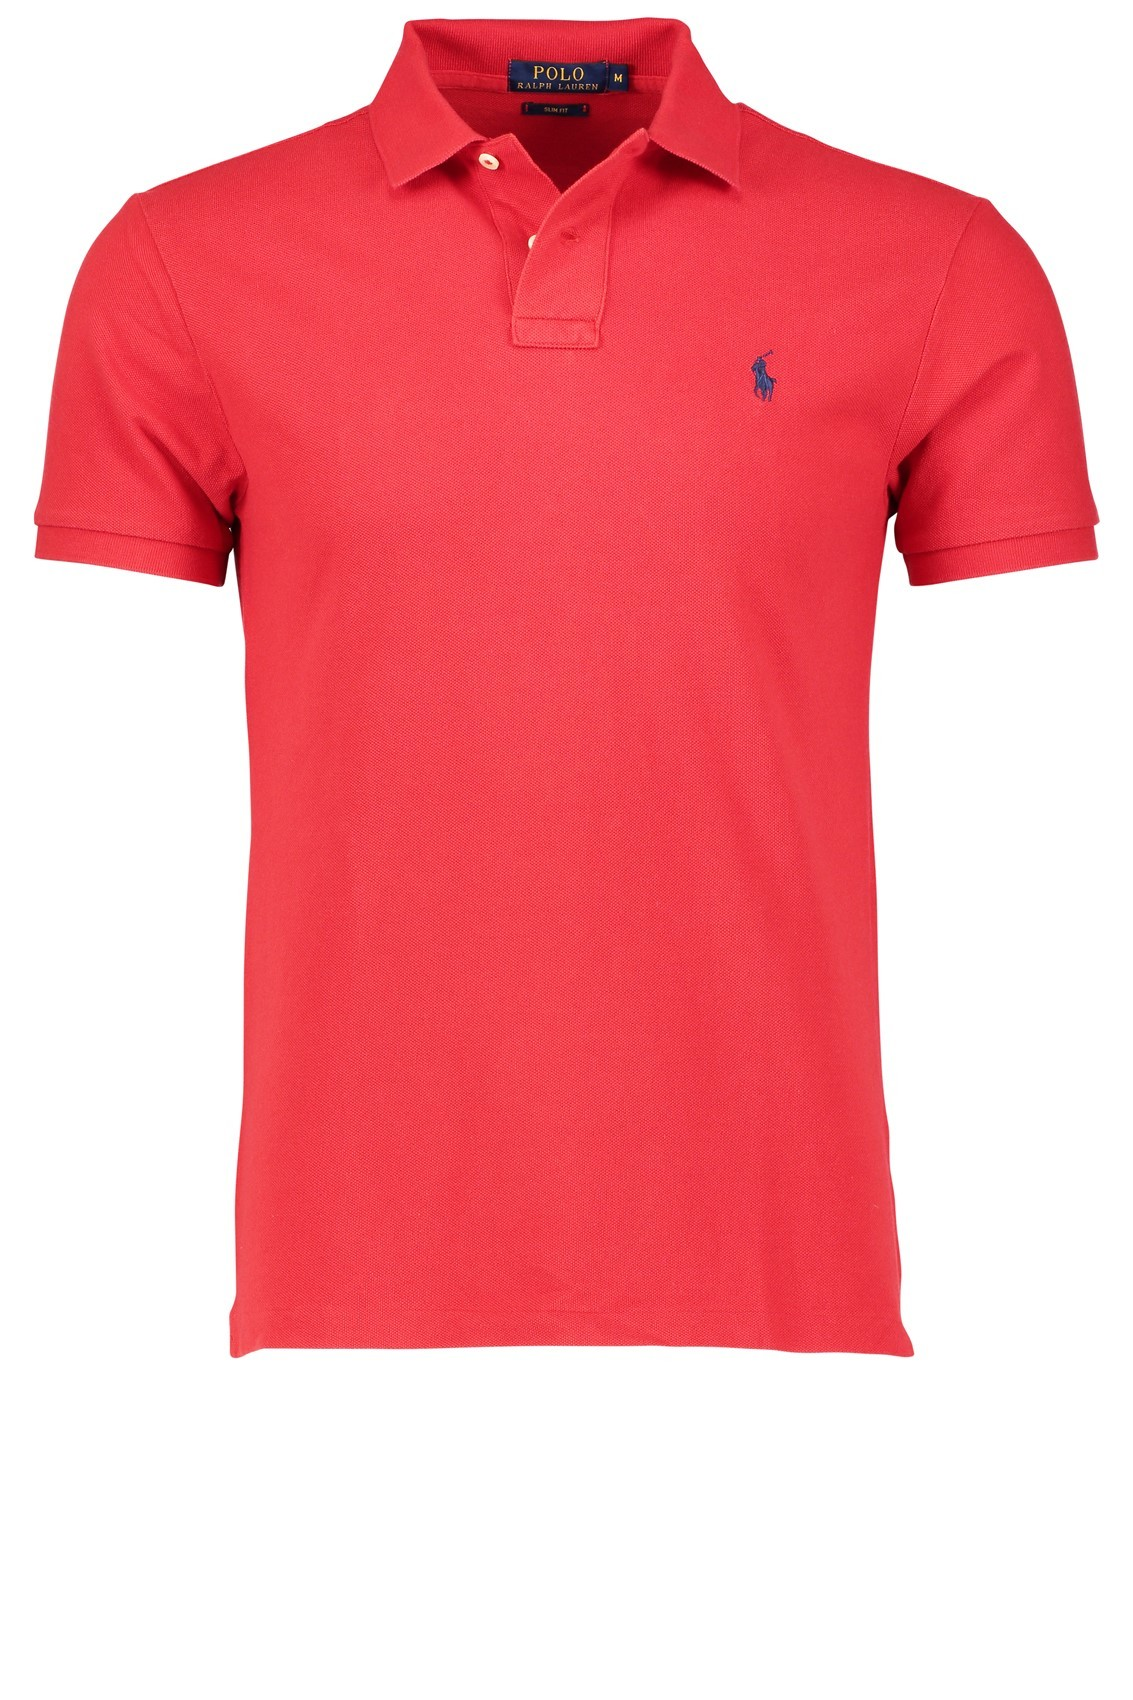 polo ralph lauren poloshirt rood slim fit. Black Bedroom Furniture Sets. Home Design Ideas